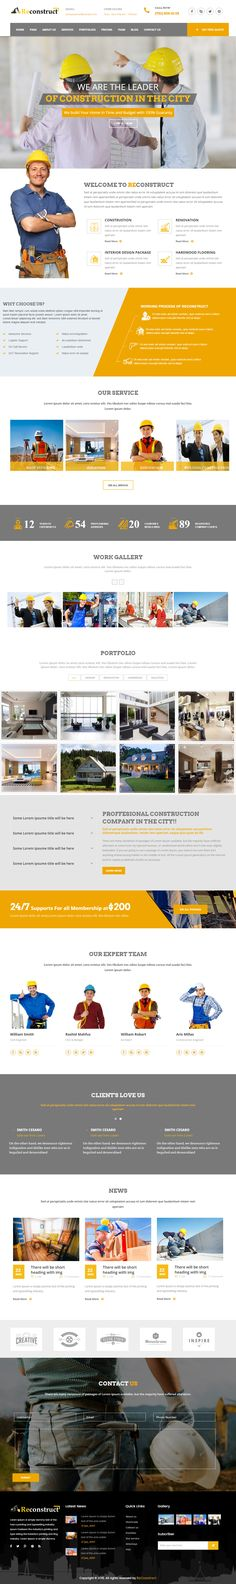 Reconstruct is Premium full Responsive Retina #ConstructionCompany template. Bootstrap 3 Framework. #Angular2. If you like this Template visit our handpicked list of best #Handyman Website Templates at: http://www.responsivemiracle.com/best-responsive-handyman-website-templates/